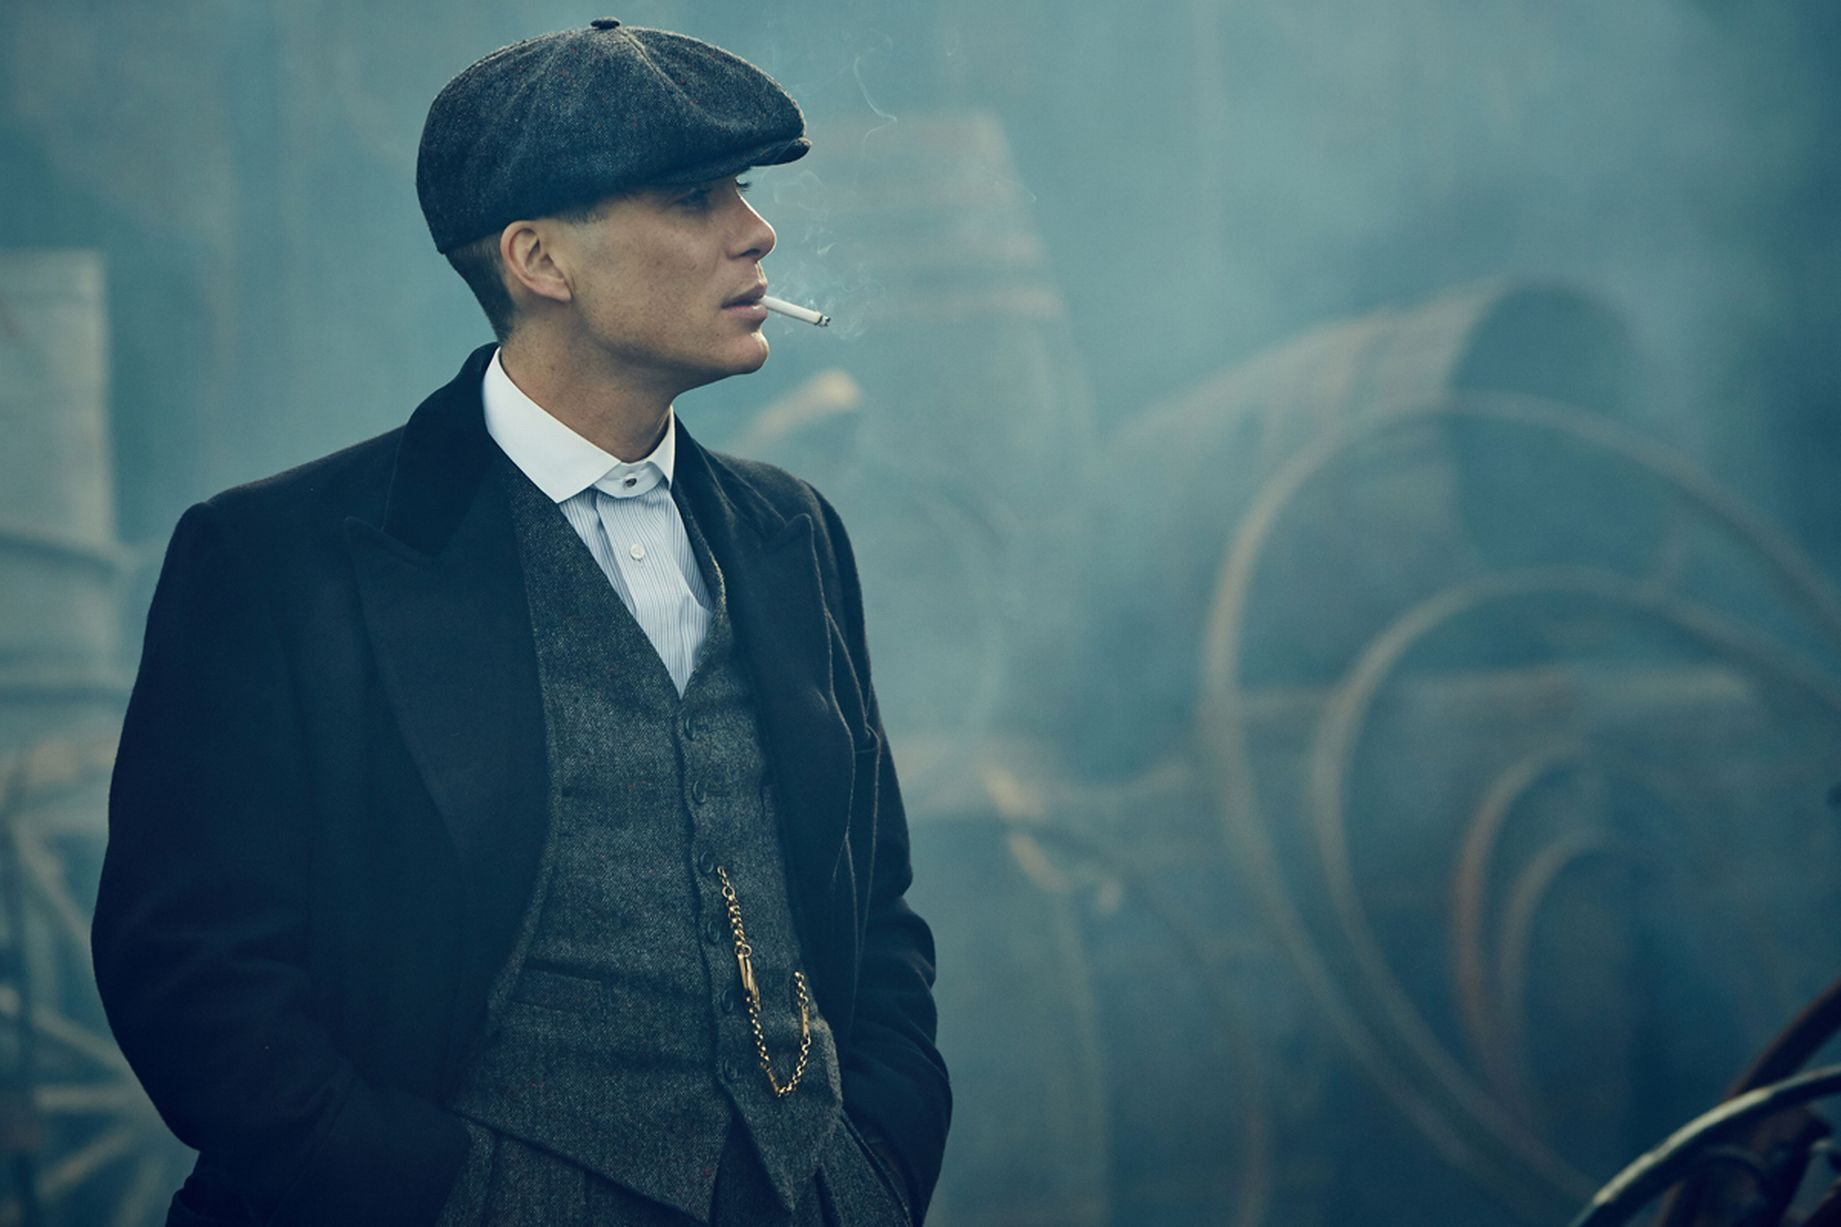 Tommy Shelby Wallpapers   Top Tommy Shelby Backgrounds 1841x1227